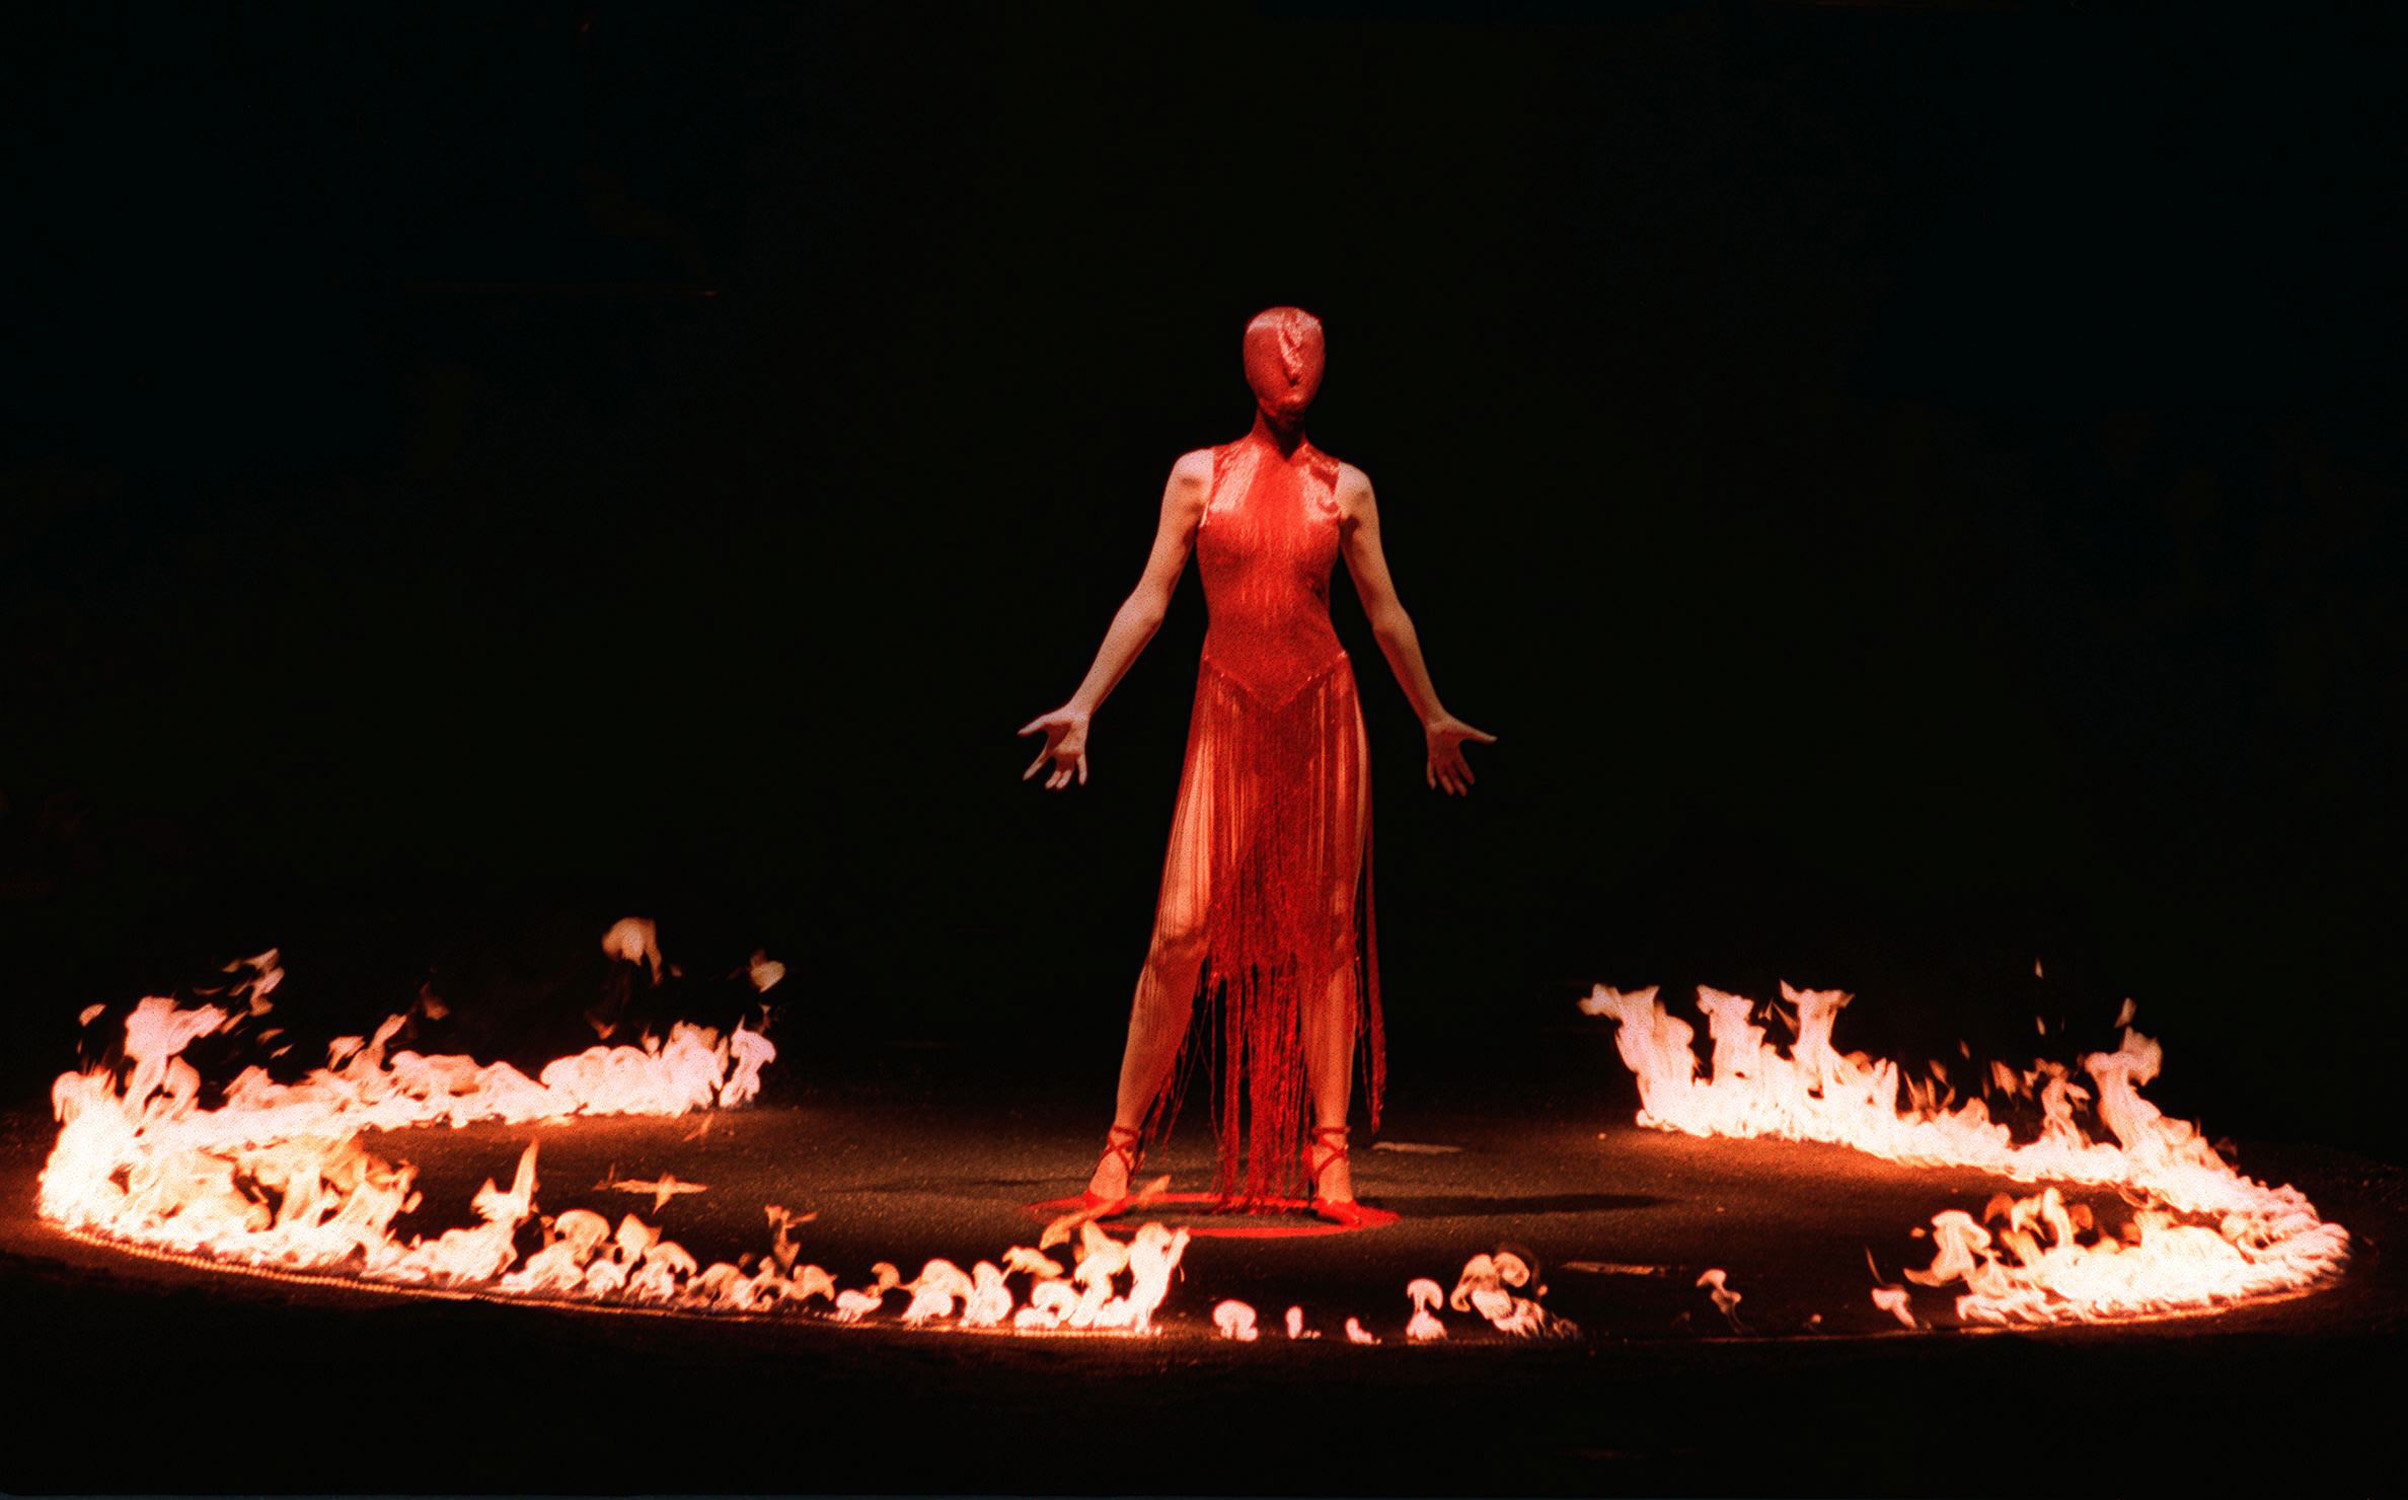 5 reasons why everyone wants tickets to Alexander McQueen's Savage Beauty exhibition at the V&A